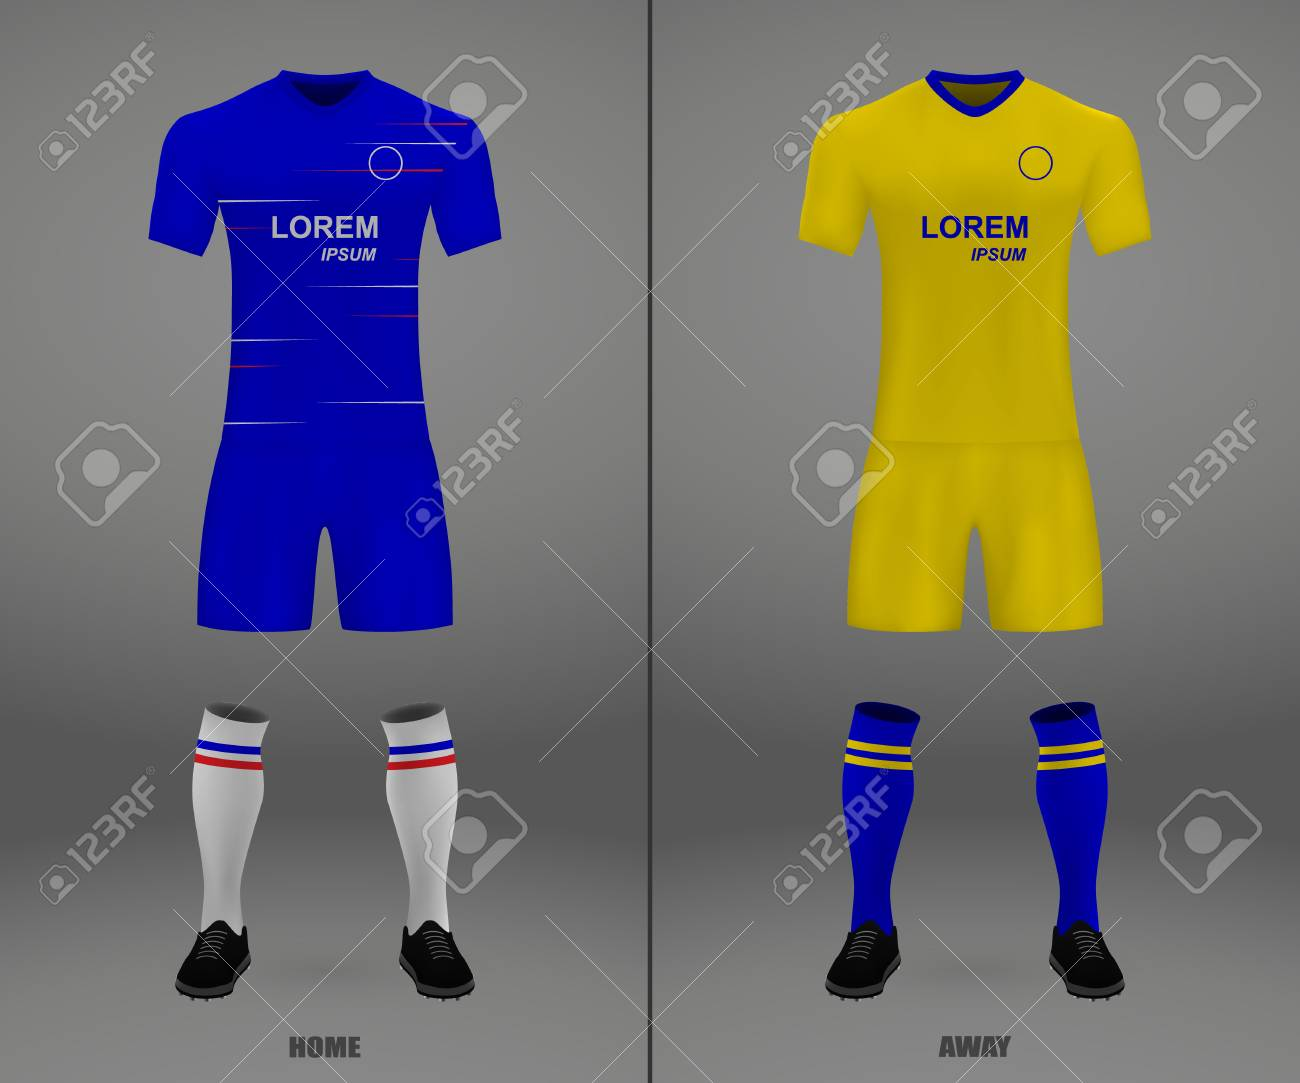 Football Kit Chelsea 2018 19 Shirt Template For Soccer Jersey Royalty Free Cliparts Vectors And Stock Illustration Image 125252120